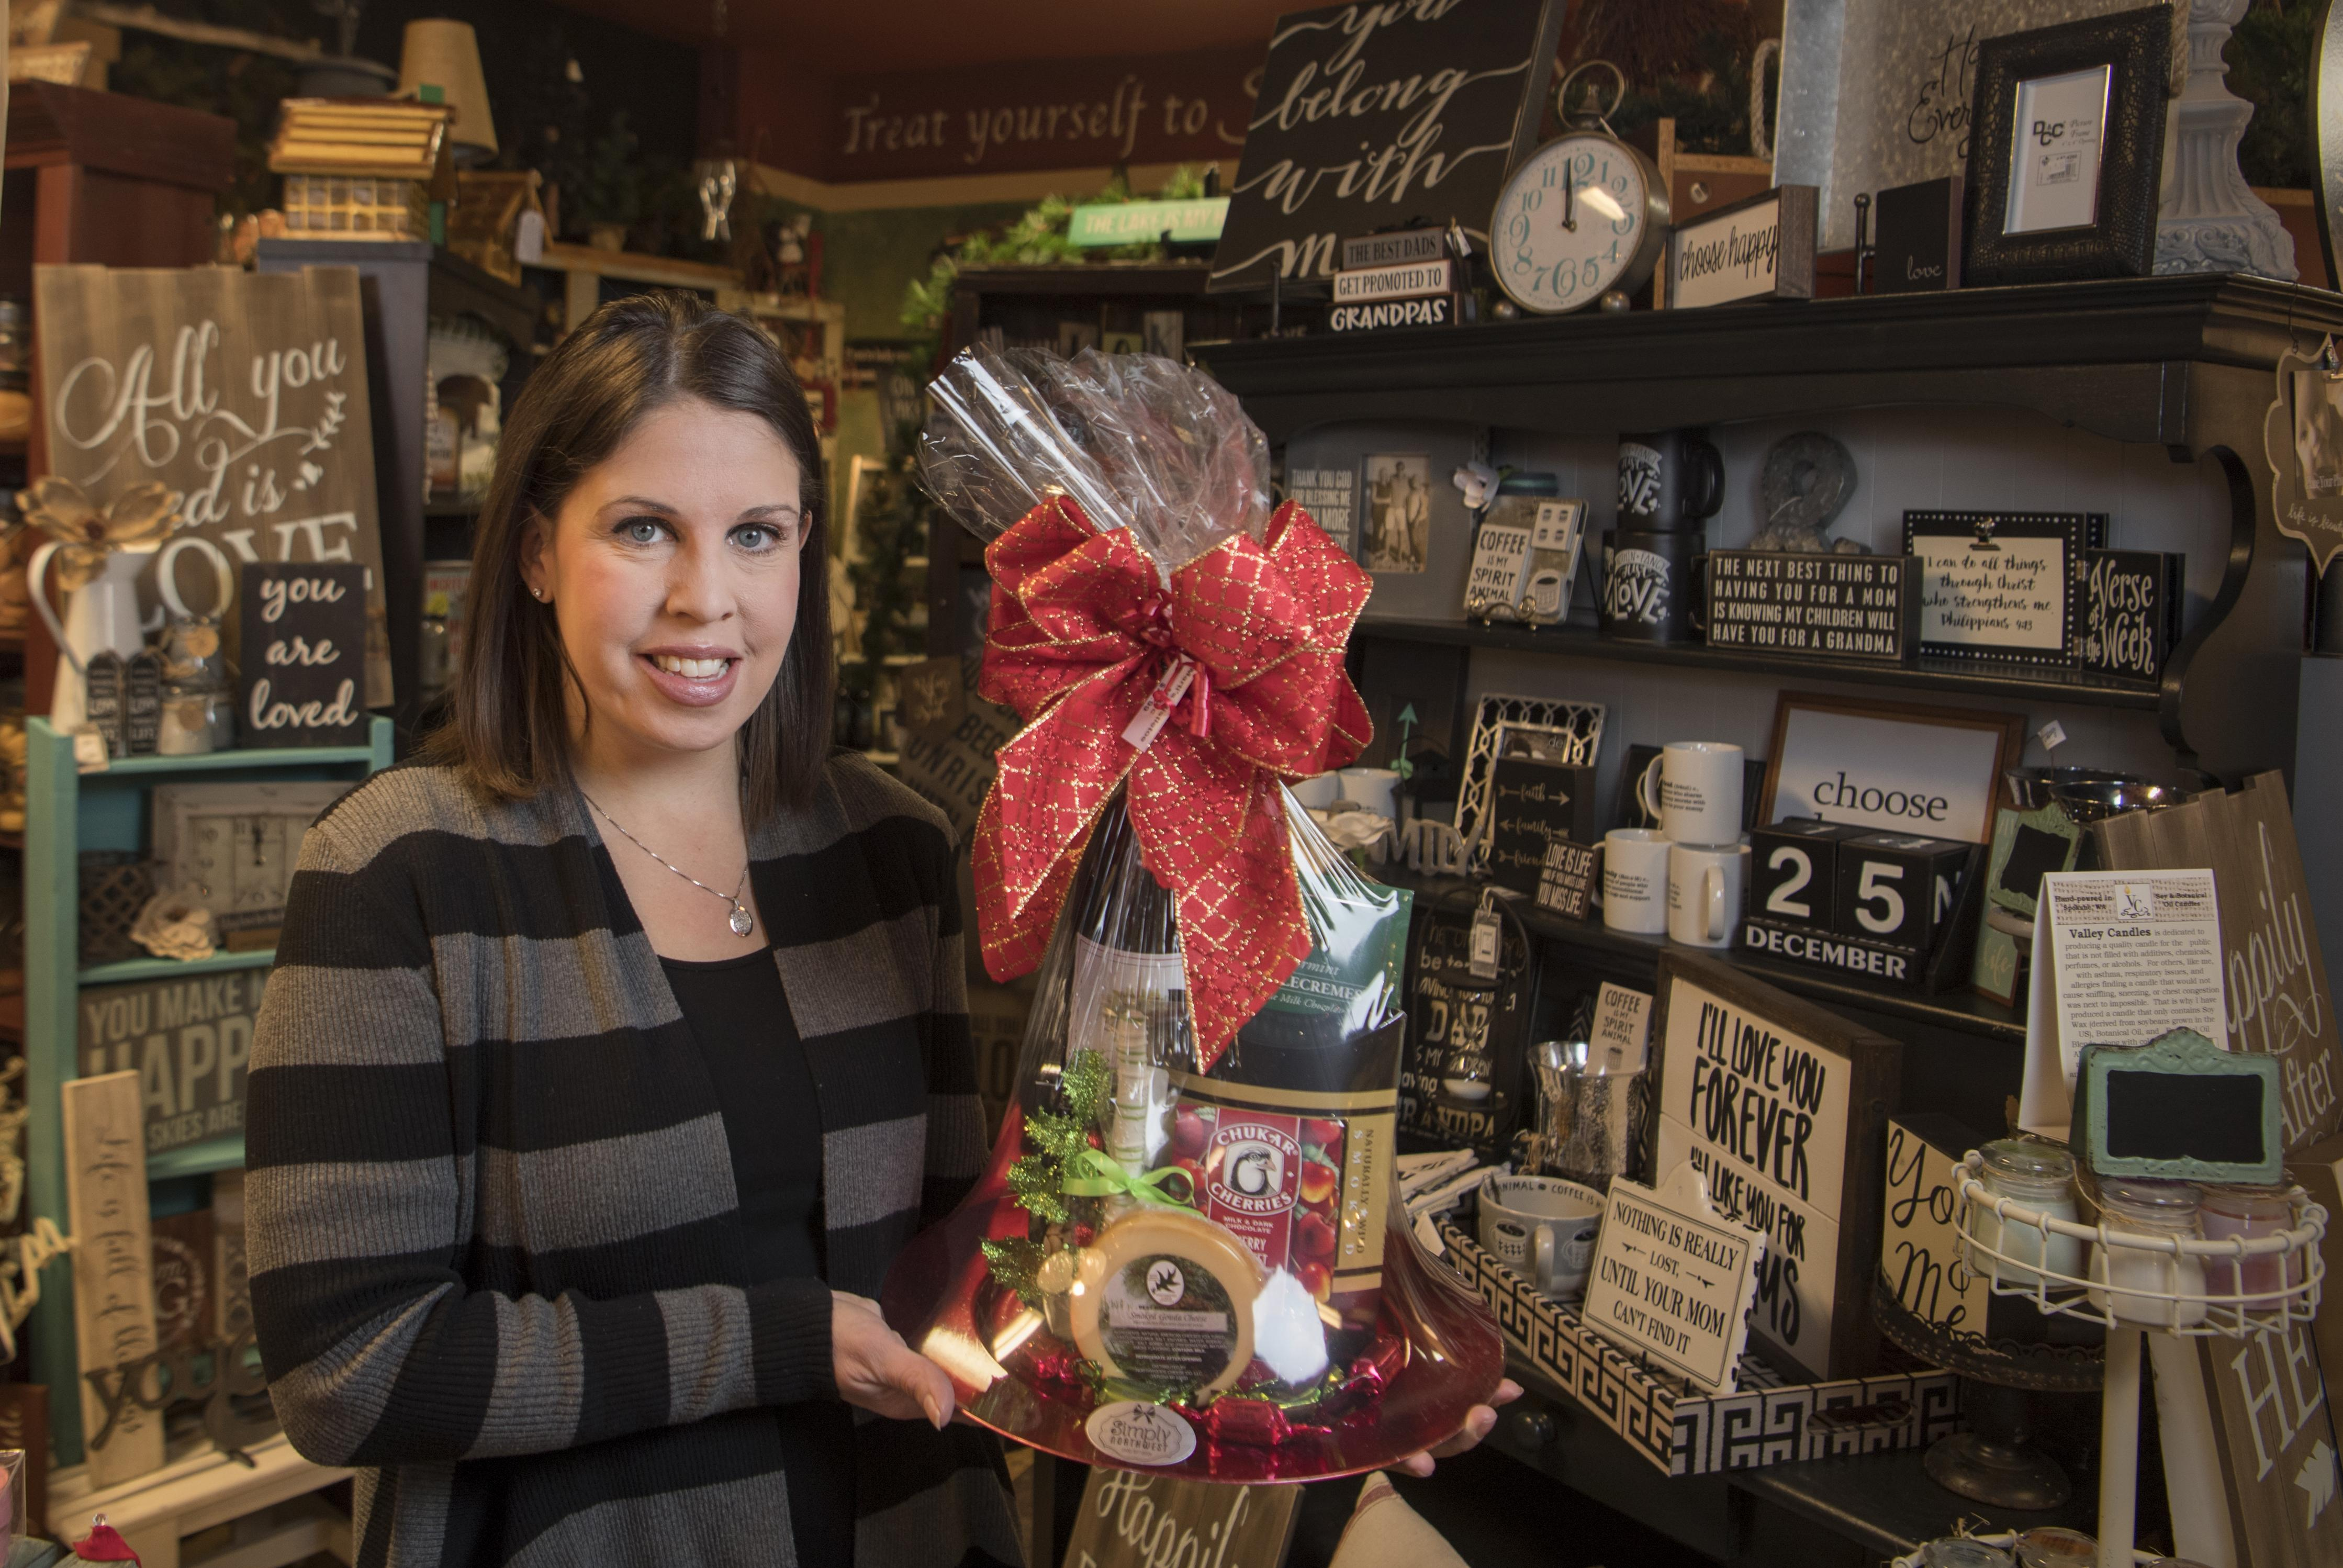 Denielle Waltermire Stuhlmiller holds a signature gift basket in her gift shop, Simply Northwest,